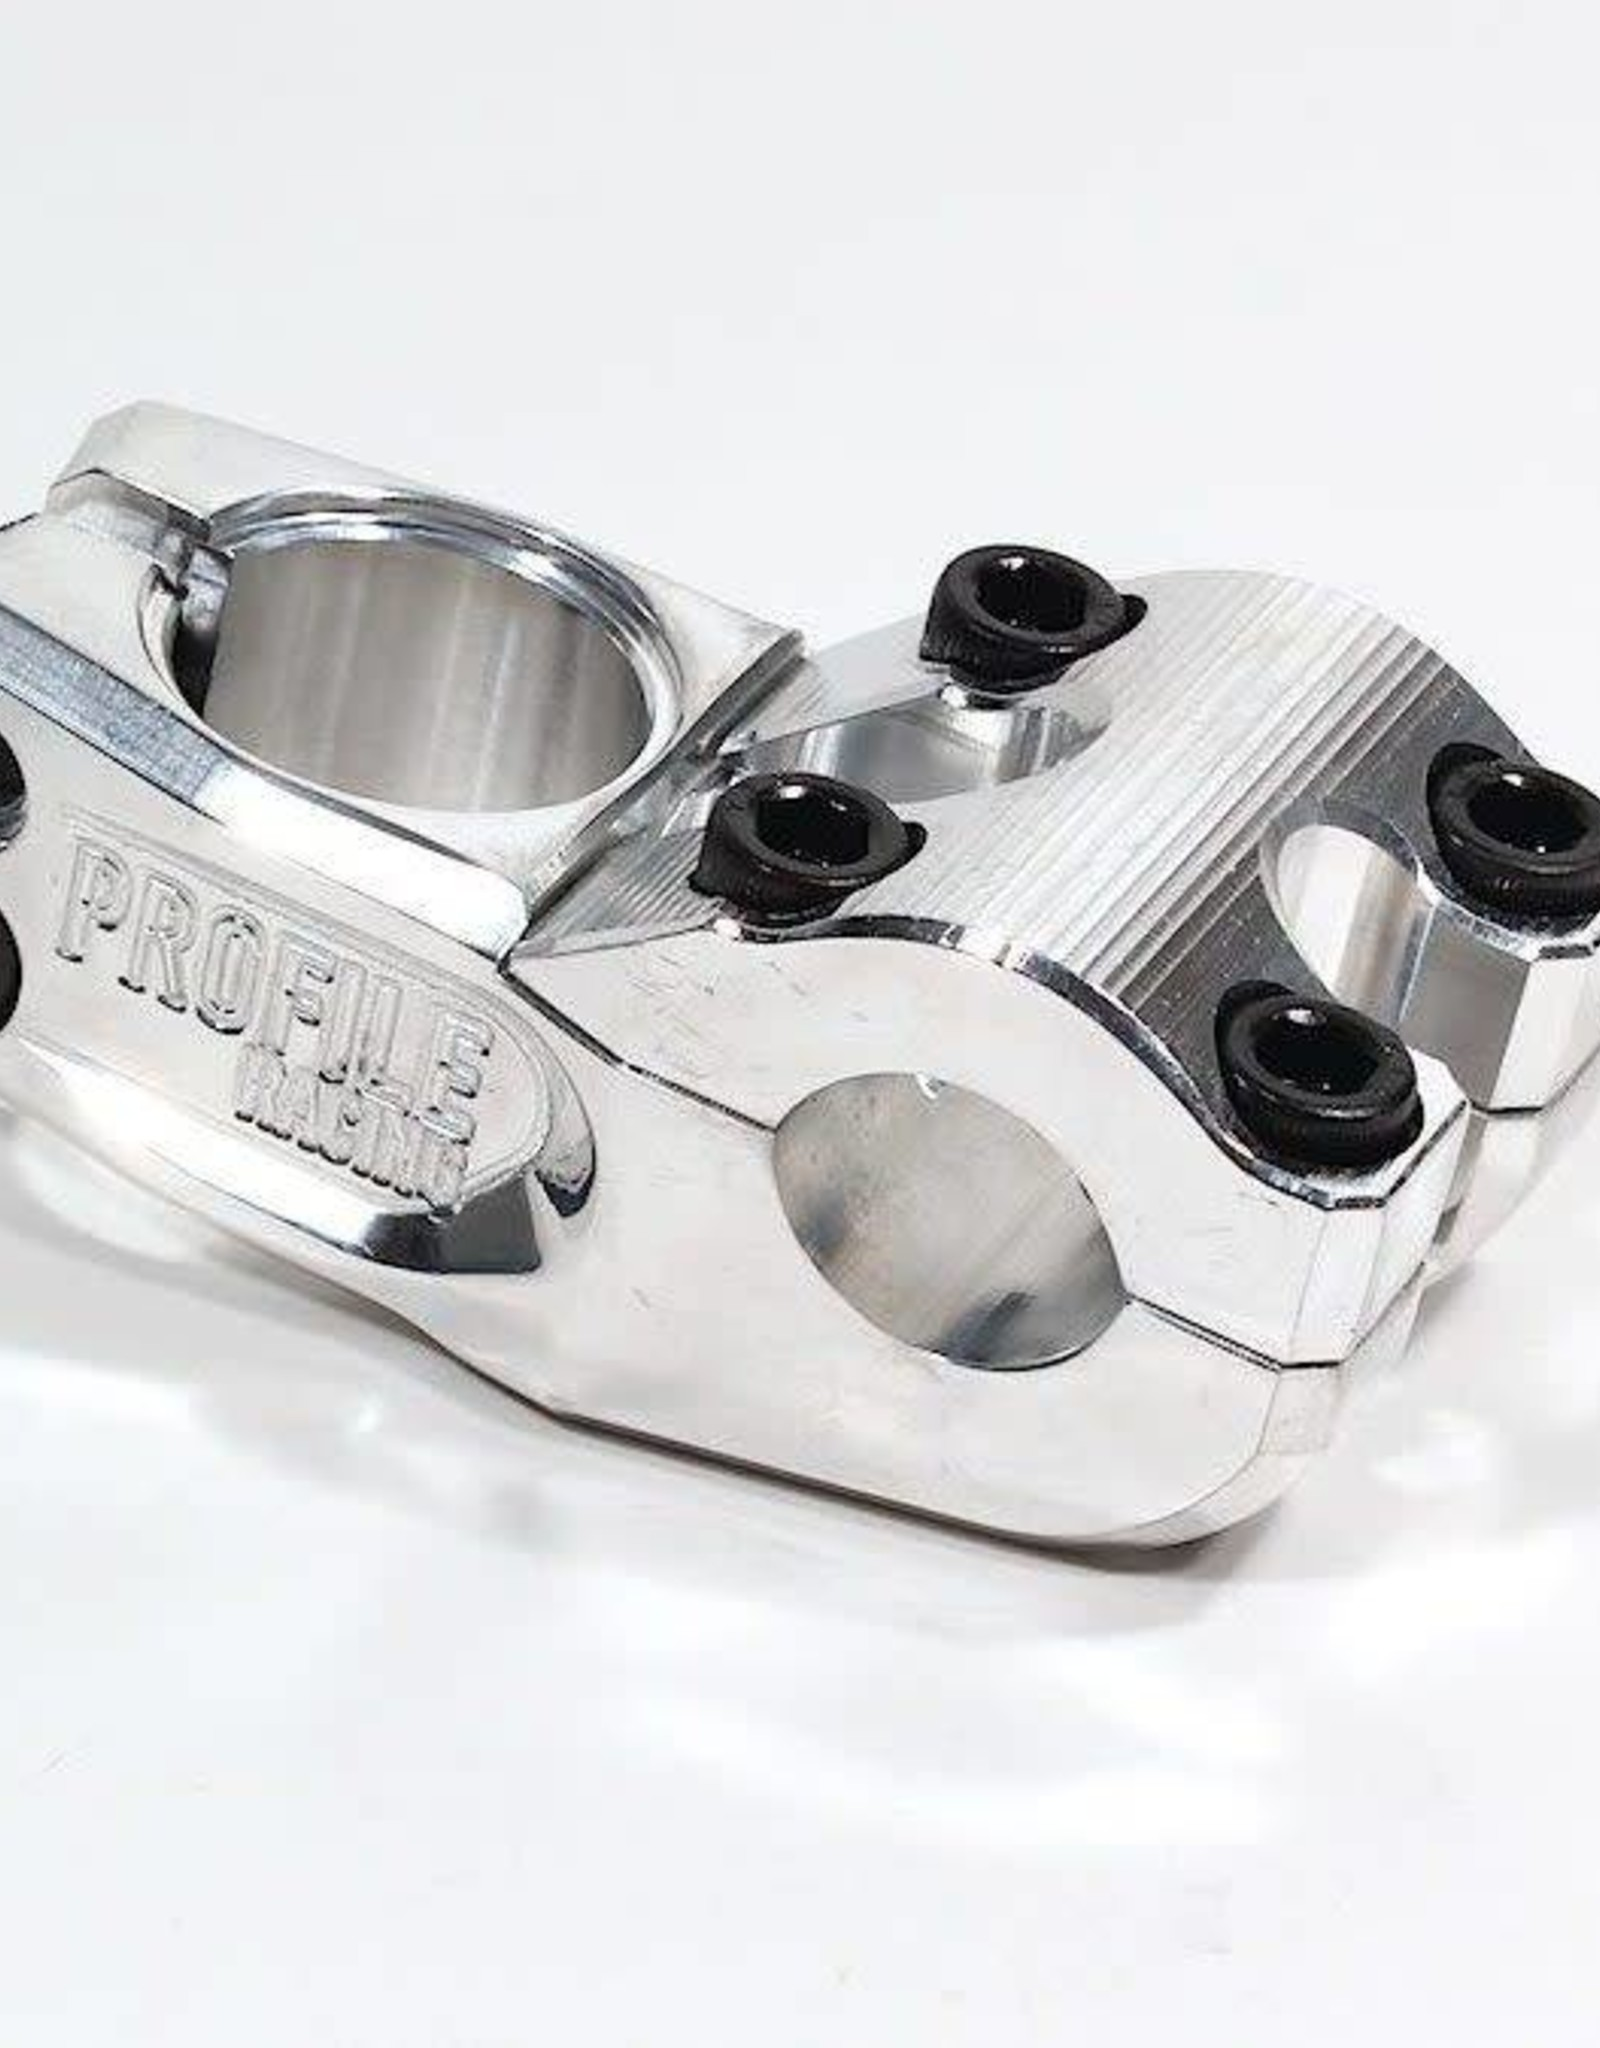 PROFILE PROFILE PUSH STEM 48MM POLISHED